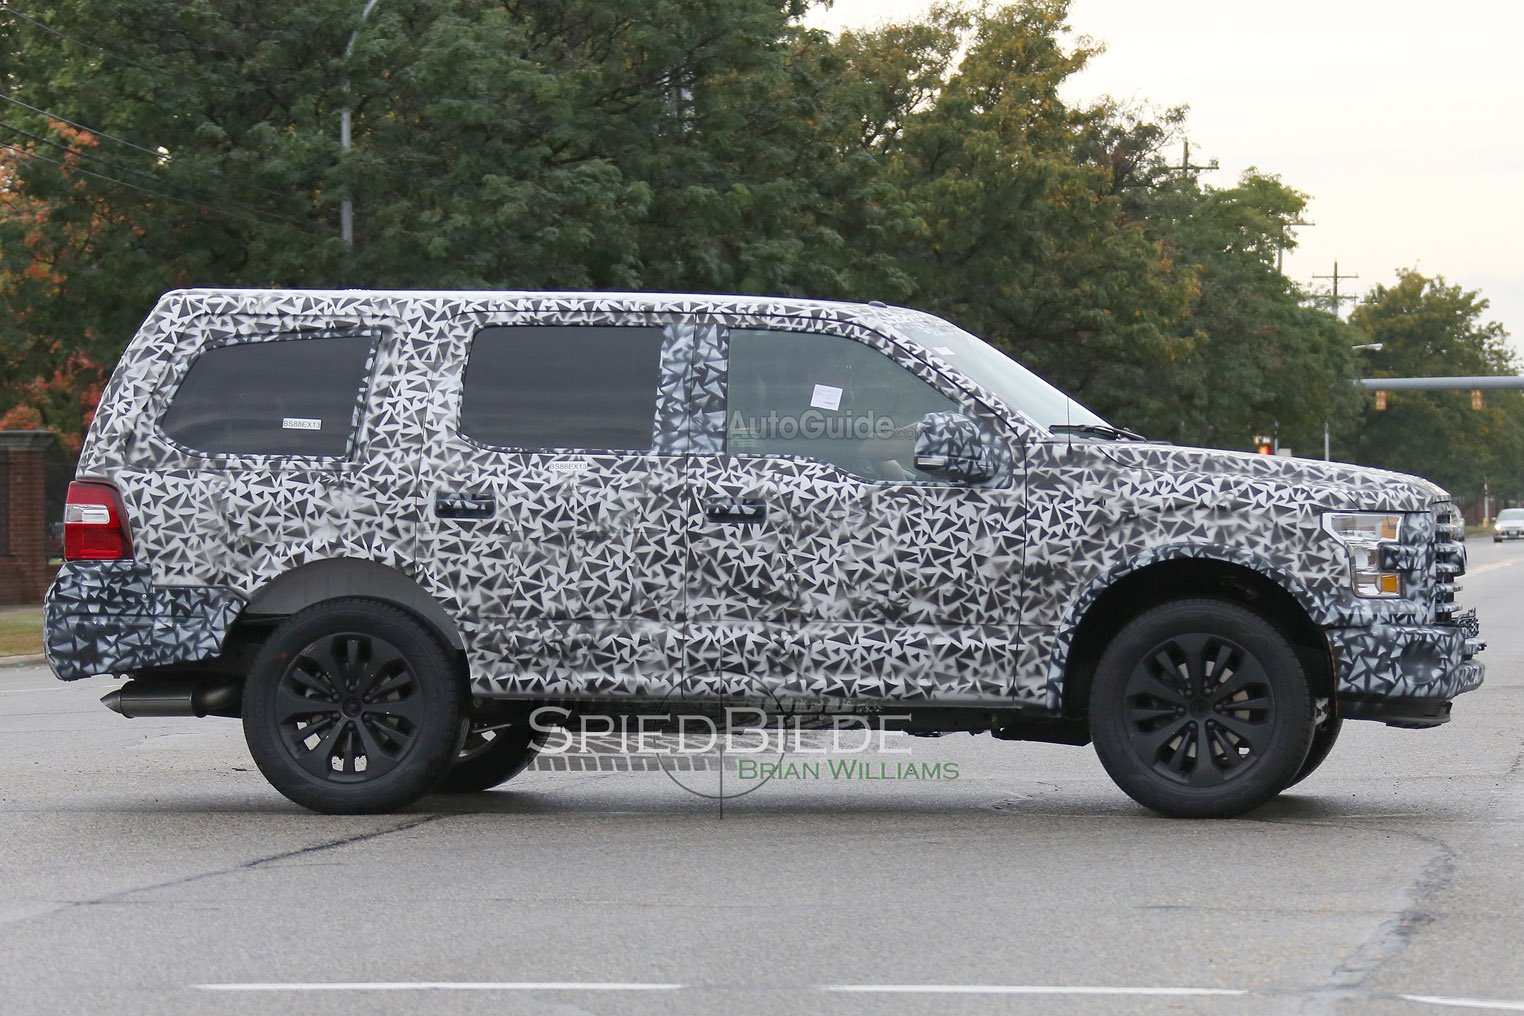 2018 Ford Expedition Spy Photo 4